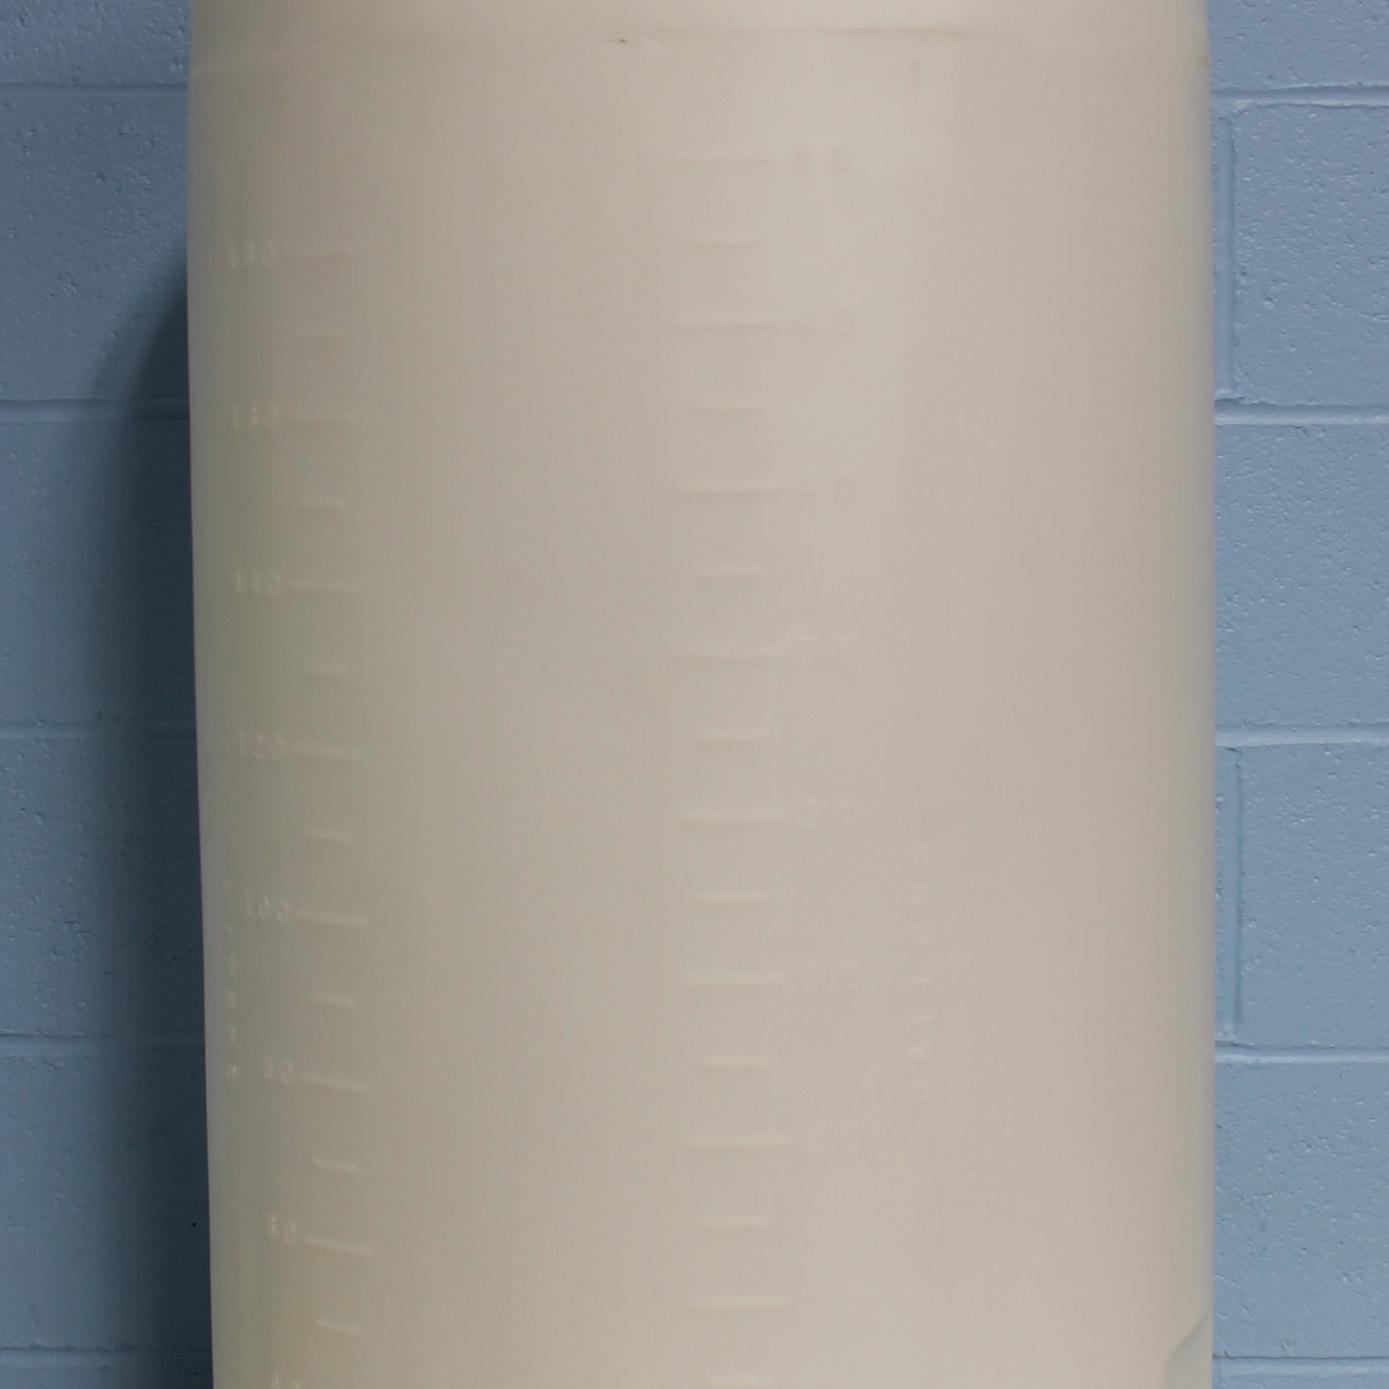 11150-0055 HDPE 55 Gallon Closed-Dome Tank 22-1/4 Name